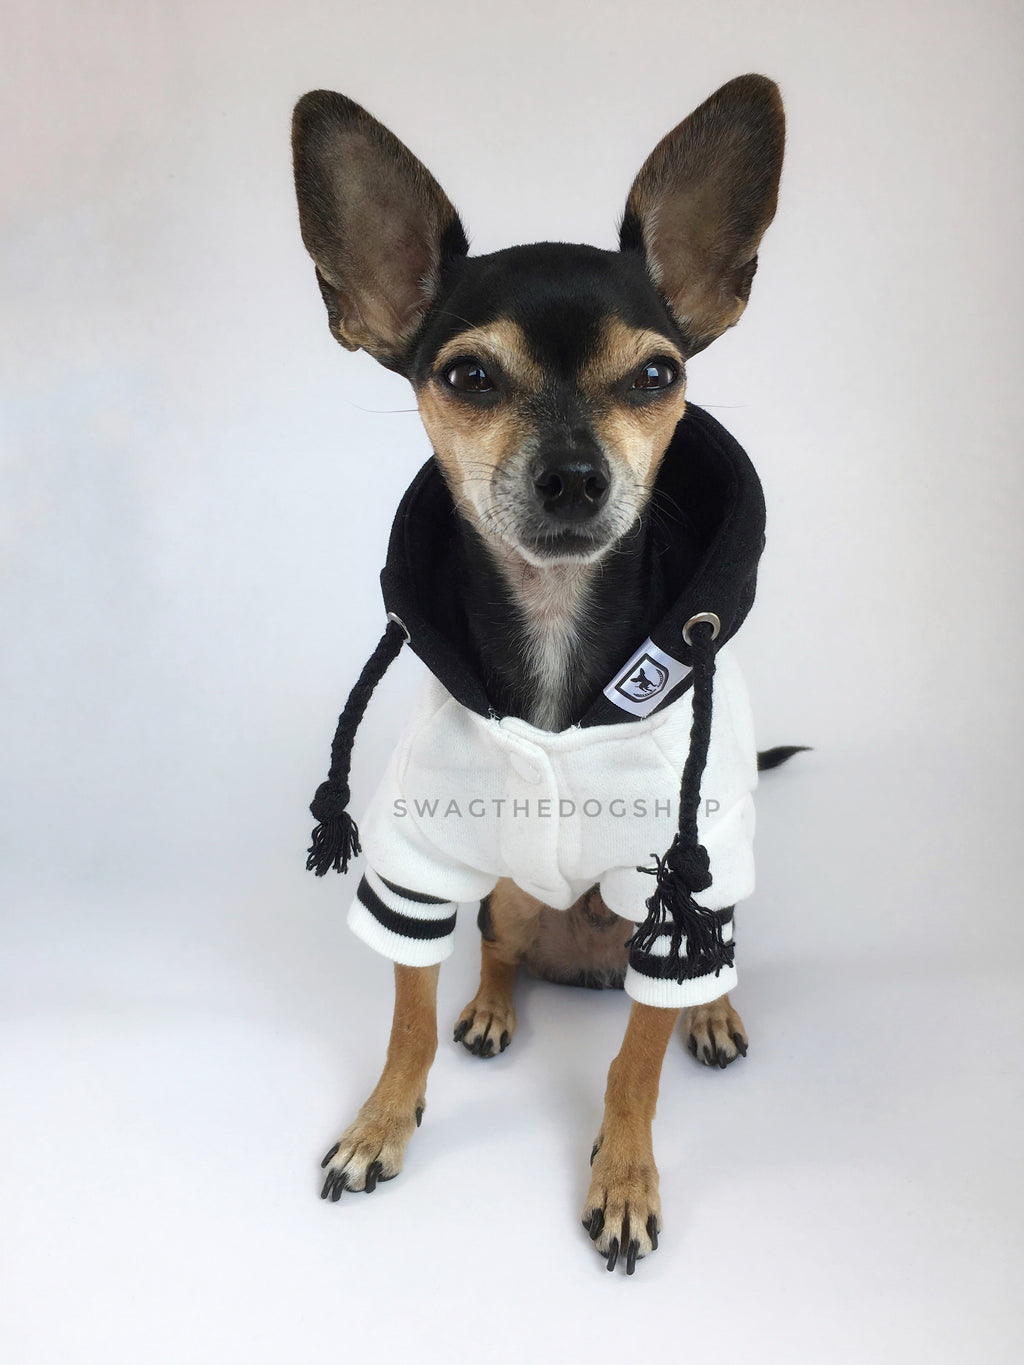 Parklife Black and White Sports Hoodie - Full Front View of Cute Chihuahua Dog Wearing Hoodie. Black and White Sports Hoodie